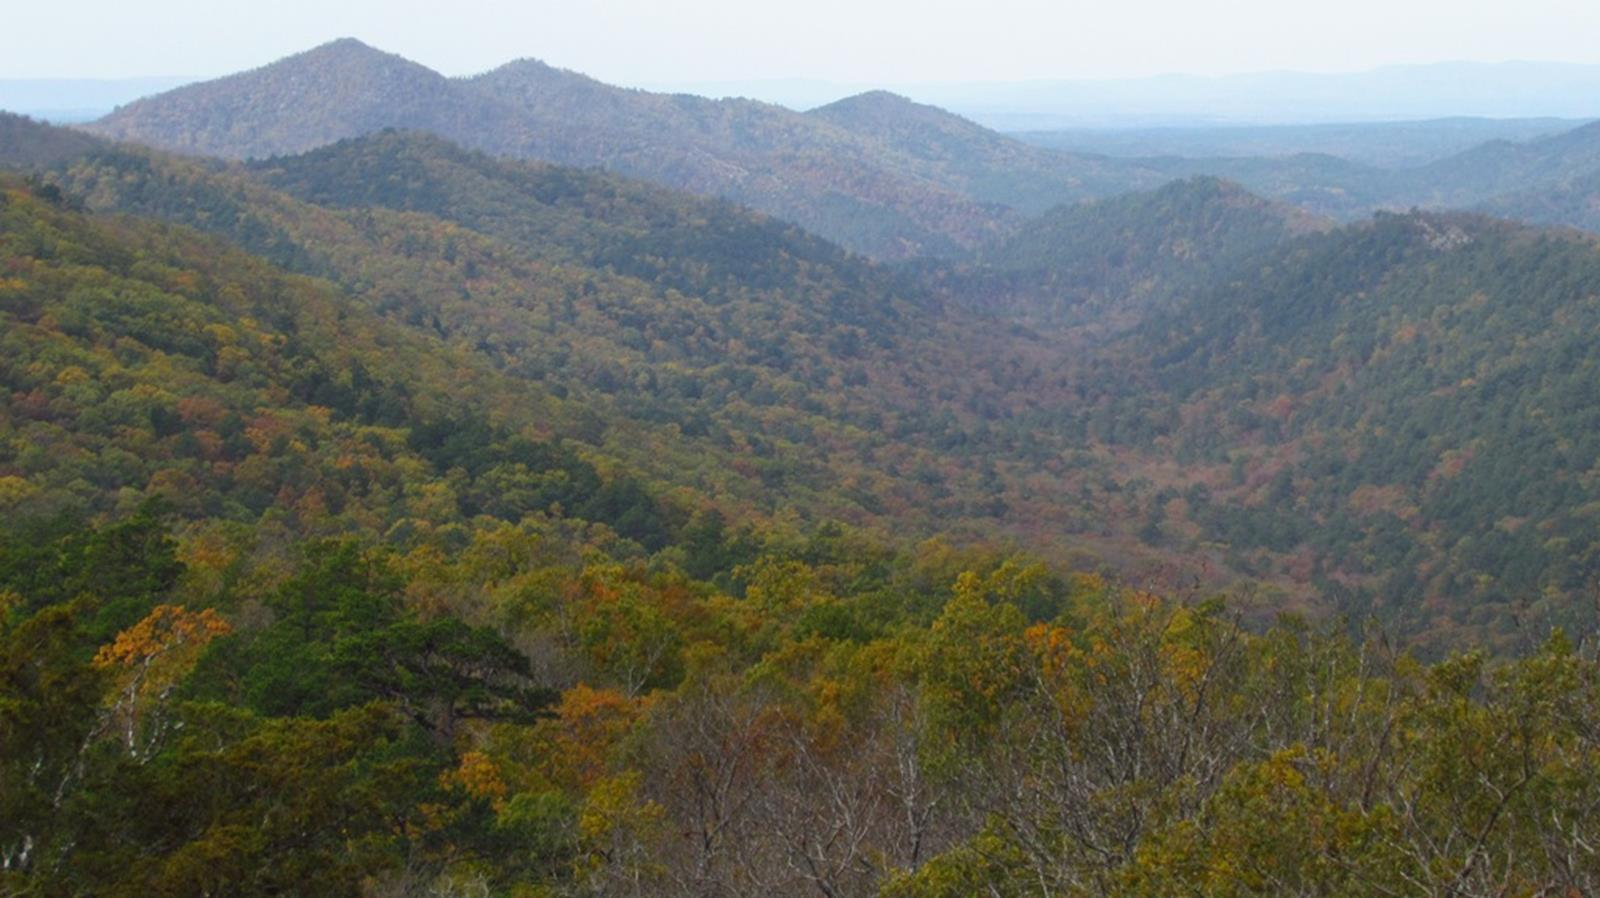 Ouachita Mountains. Credit: Tammo2011 at en.wikipedia